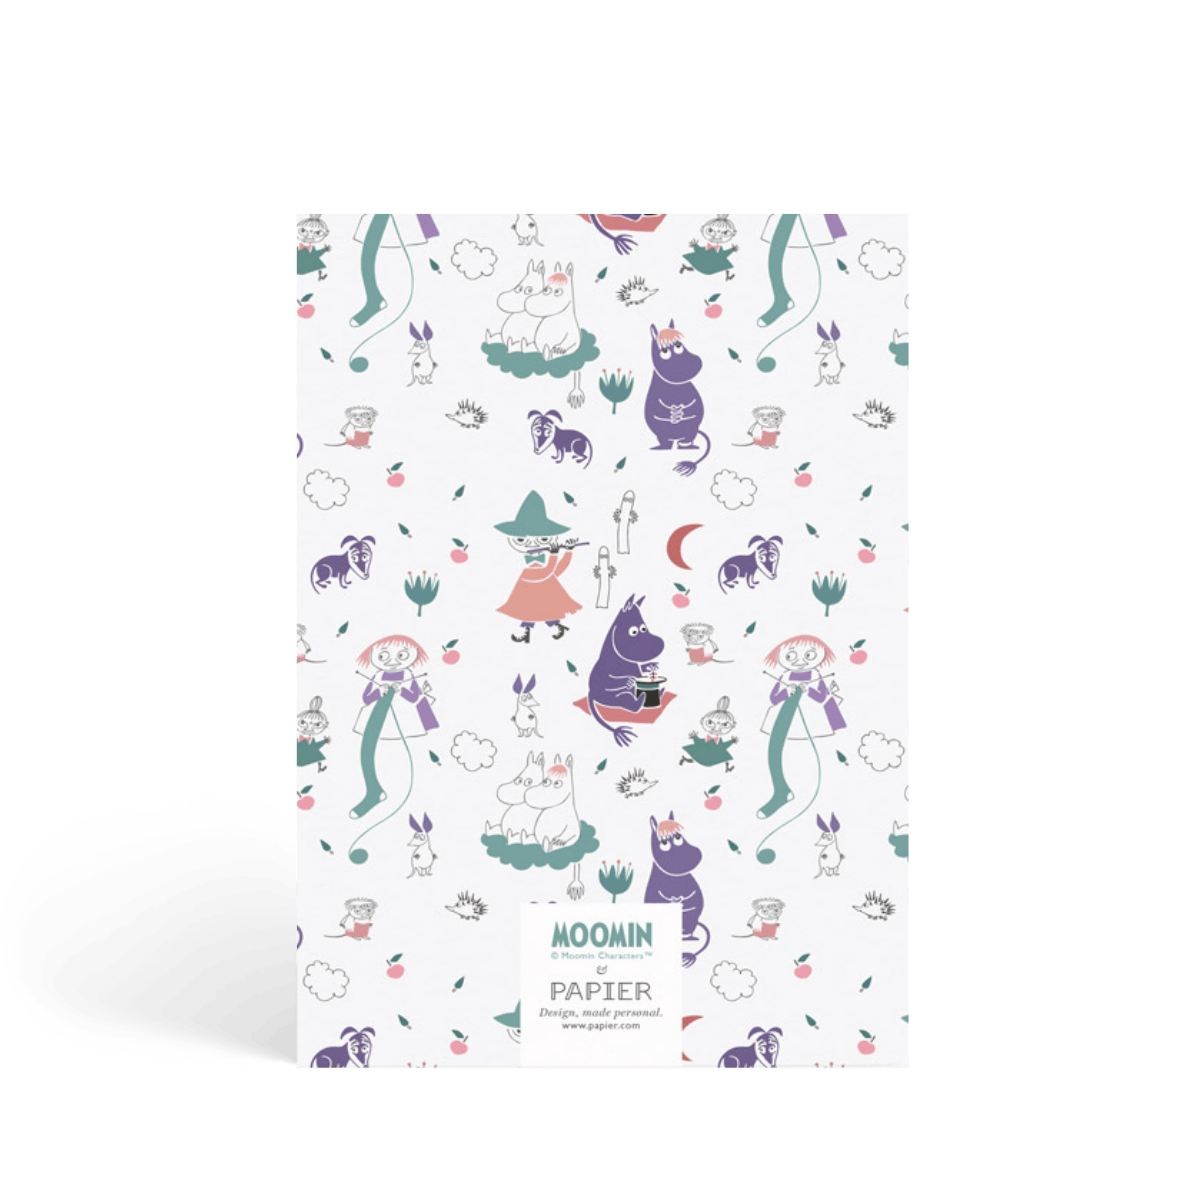 Https%3a%2f%2fwww.papier.com%2fproduct image%2f47750%2f5%2fpurple moomins 11713 arriere 1538135291.png?ixlib=rb 1.1